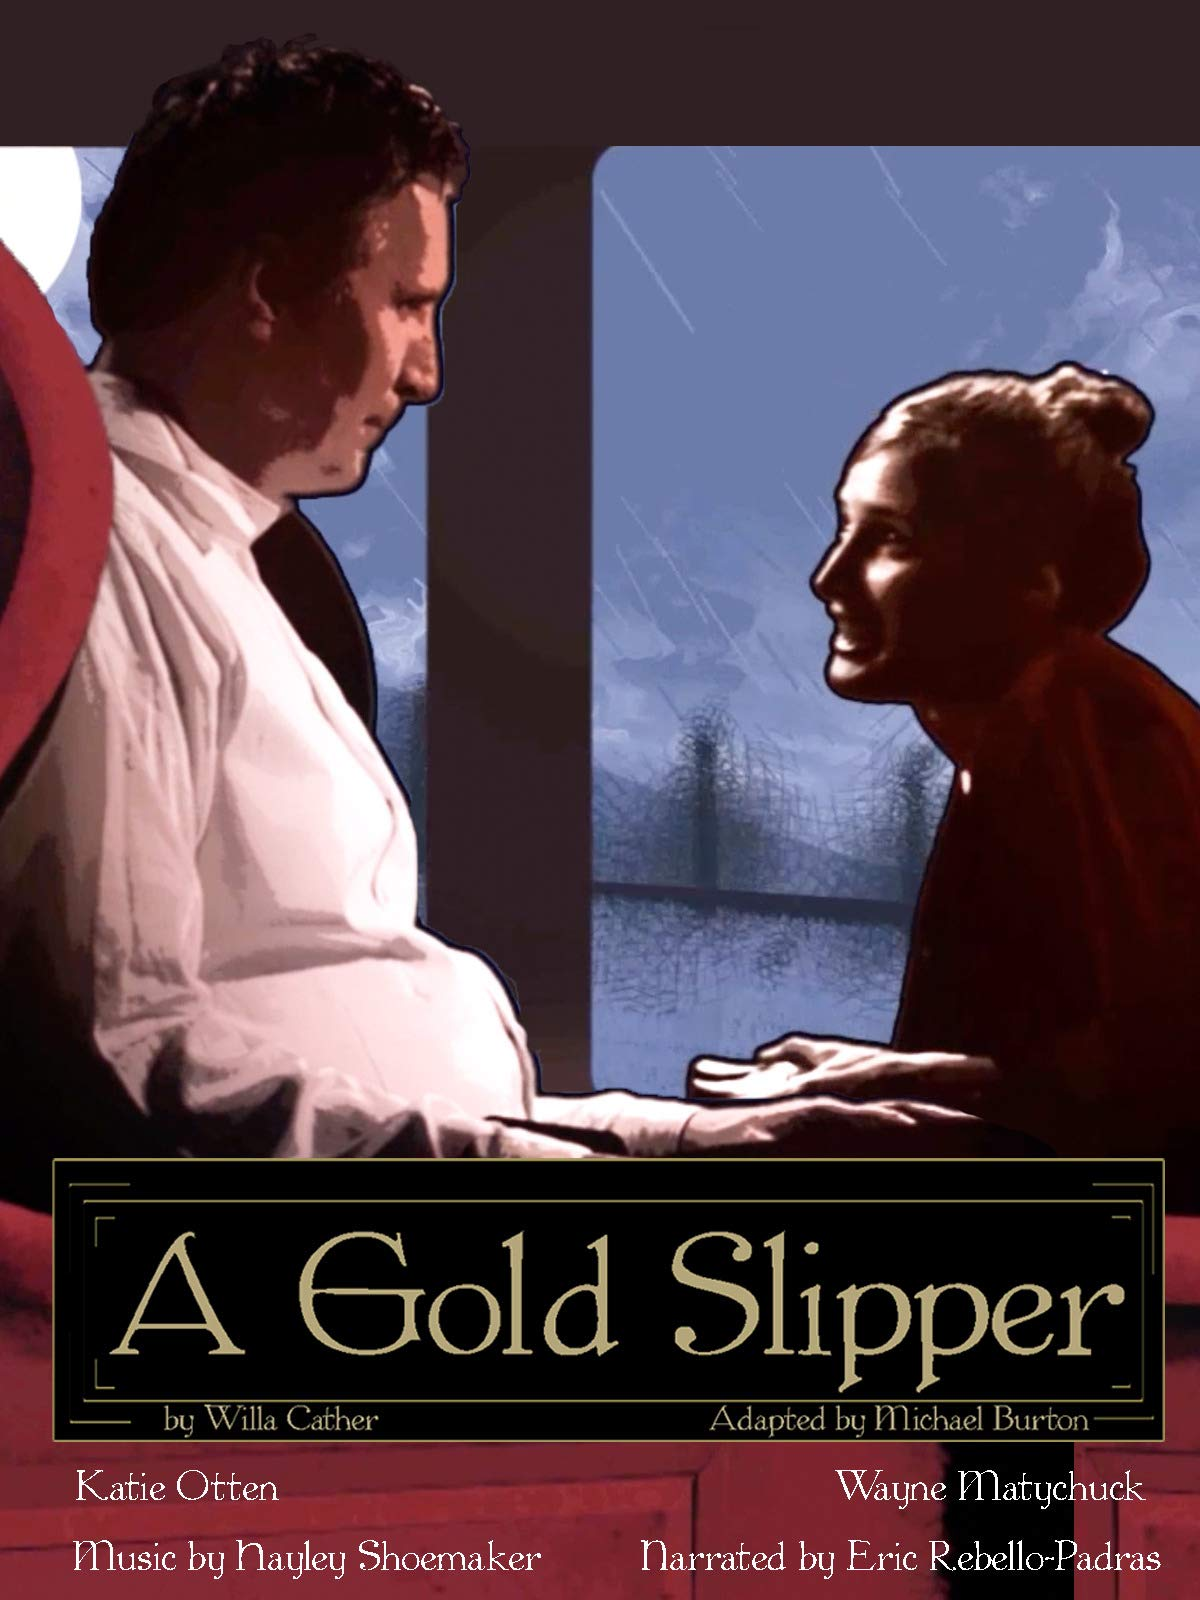 A Gold Slipper